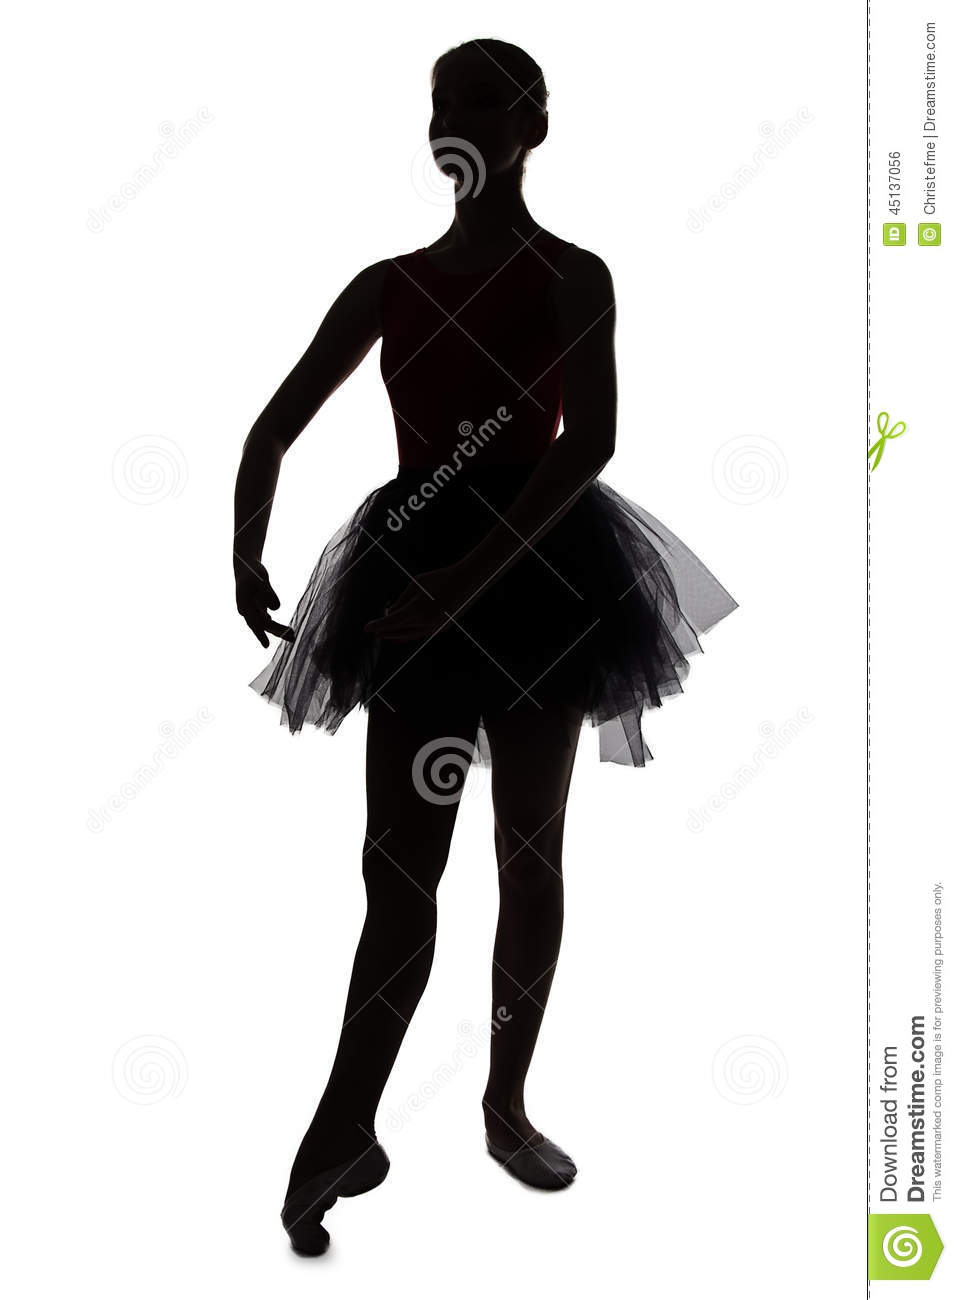 Silhouette of young dancing ballerina